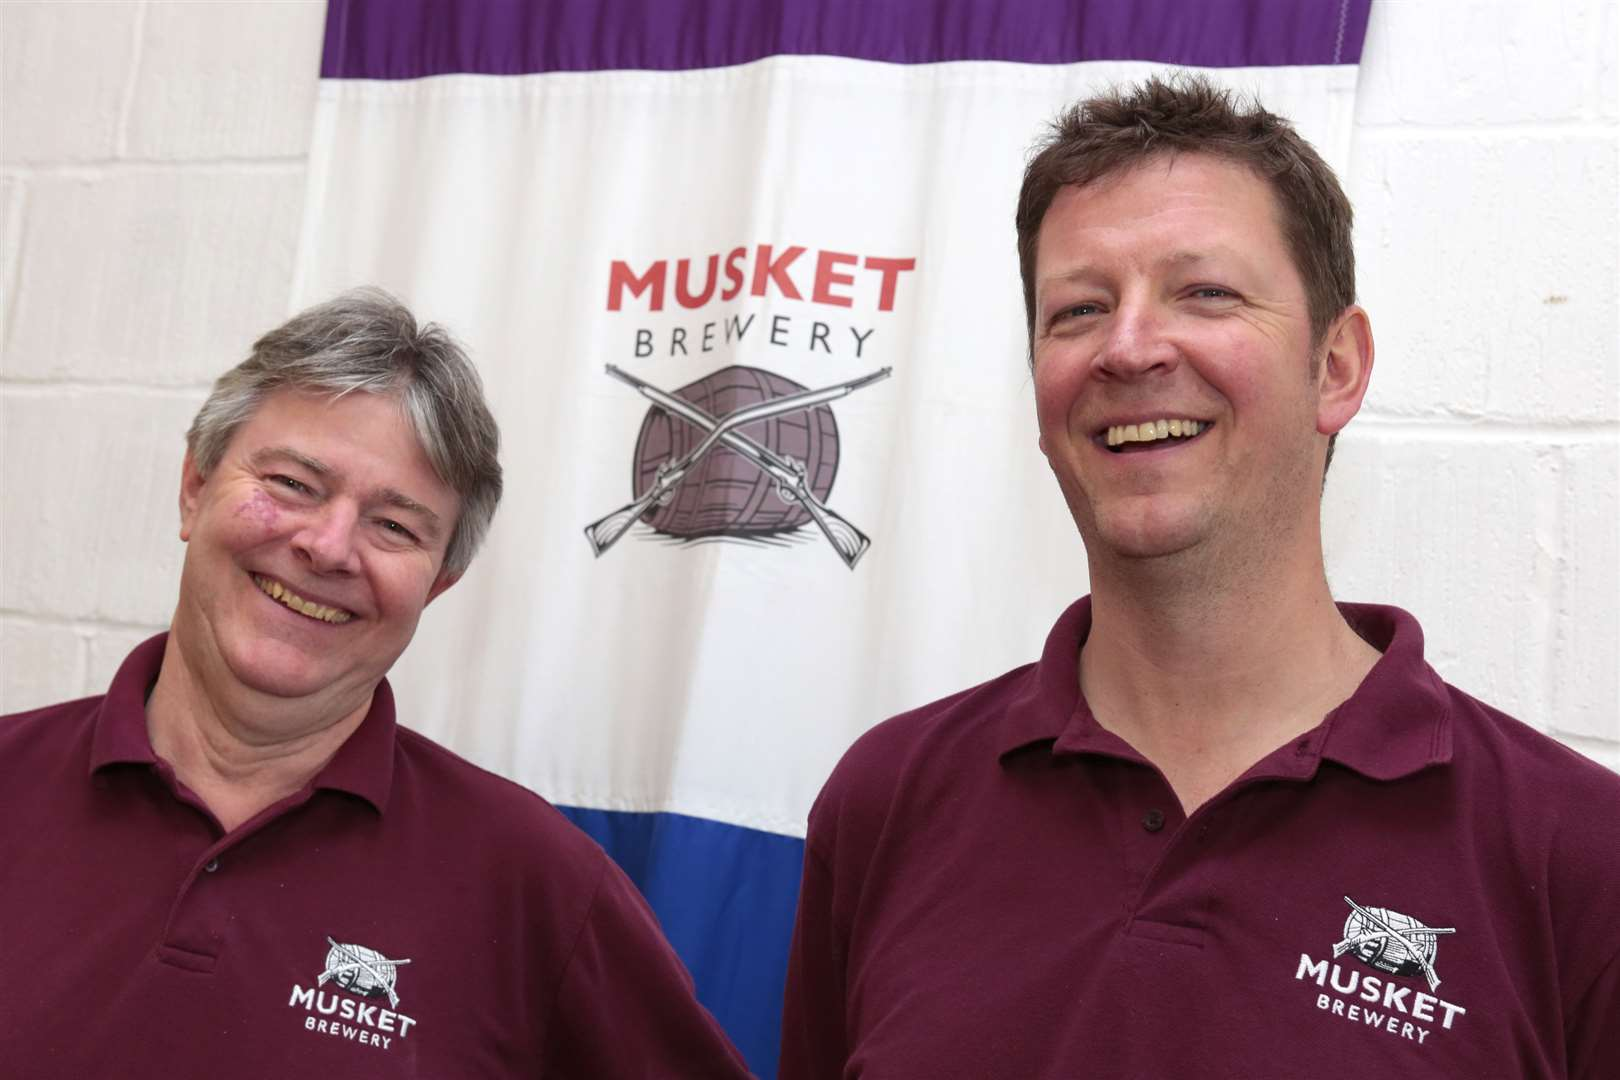 Musket Brewery owners Tony Williams, left, and Mark Stroud